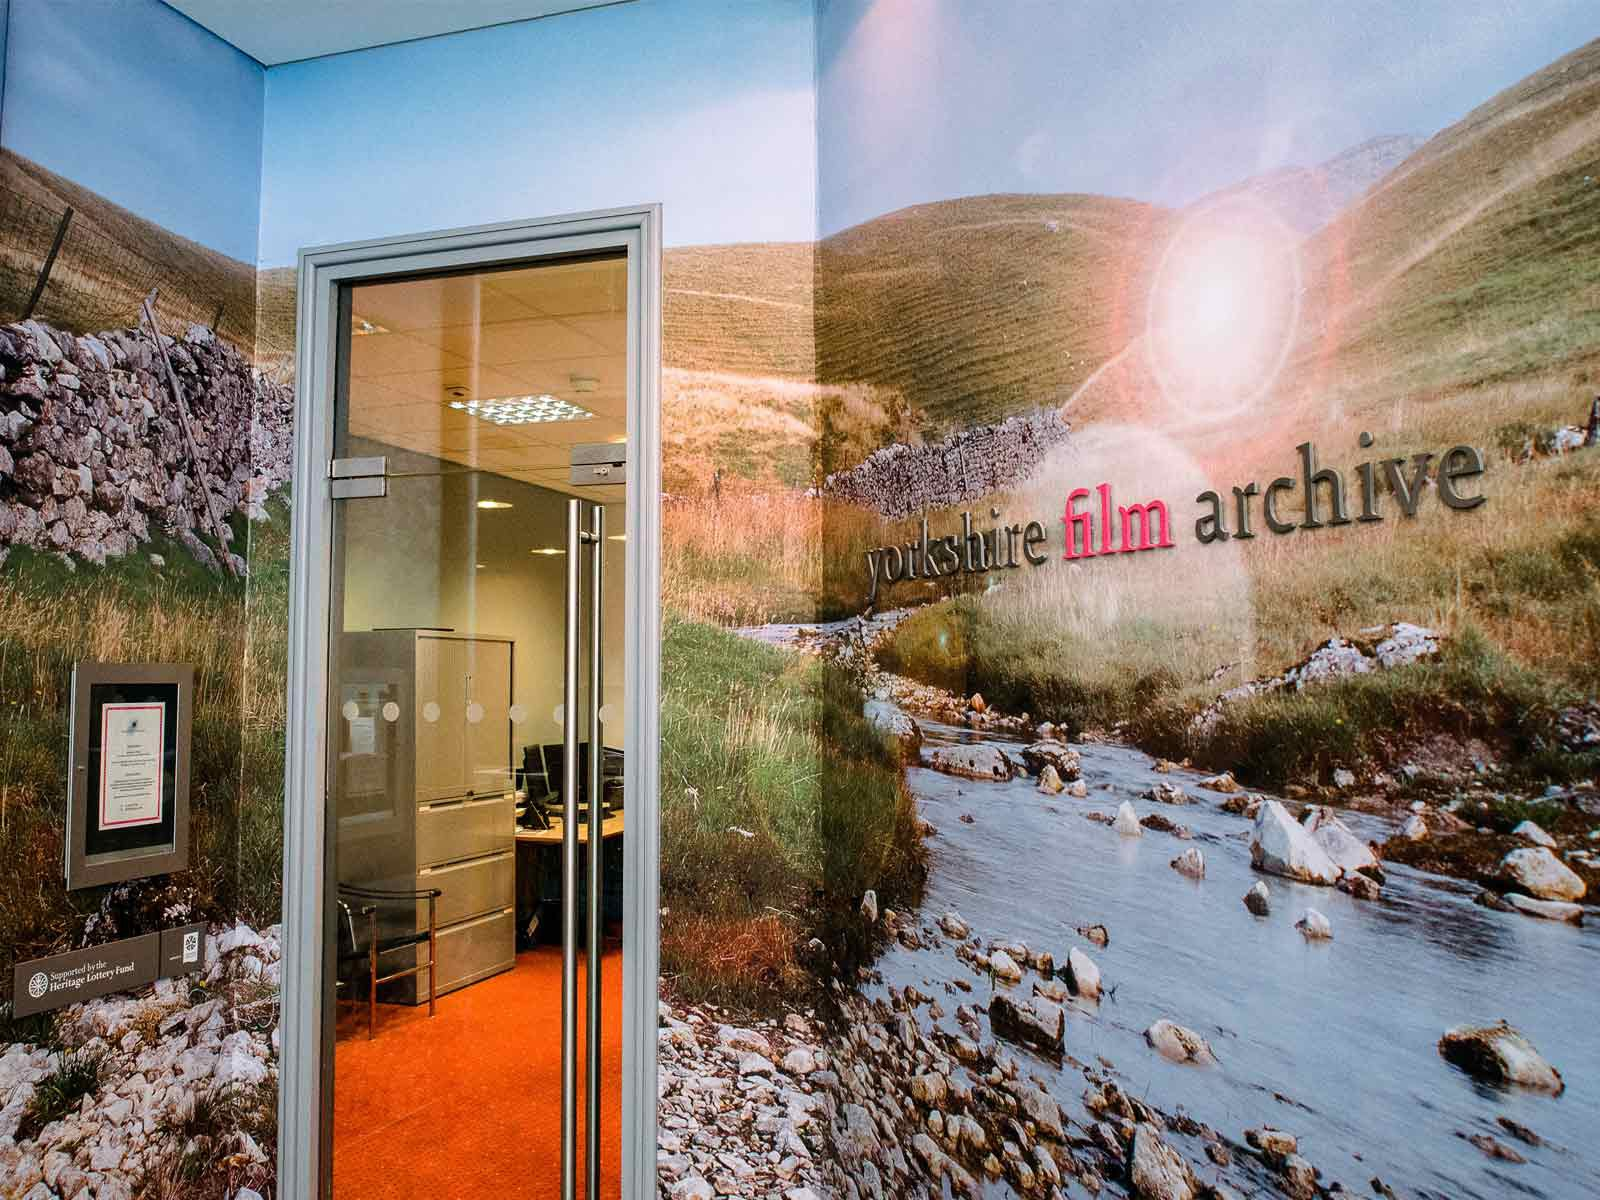 Doorway to a film archive